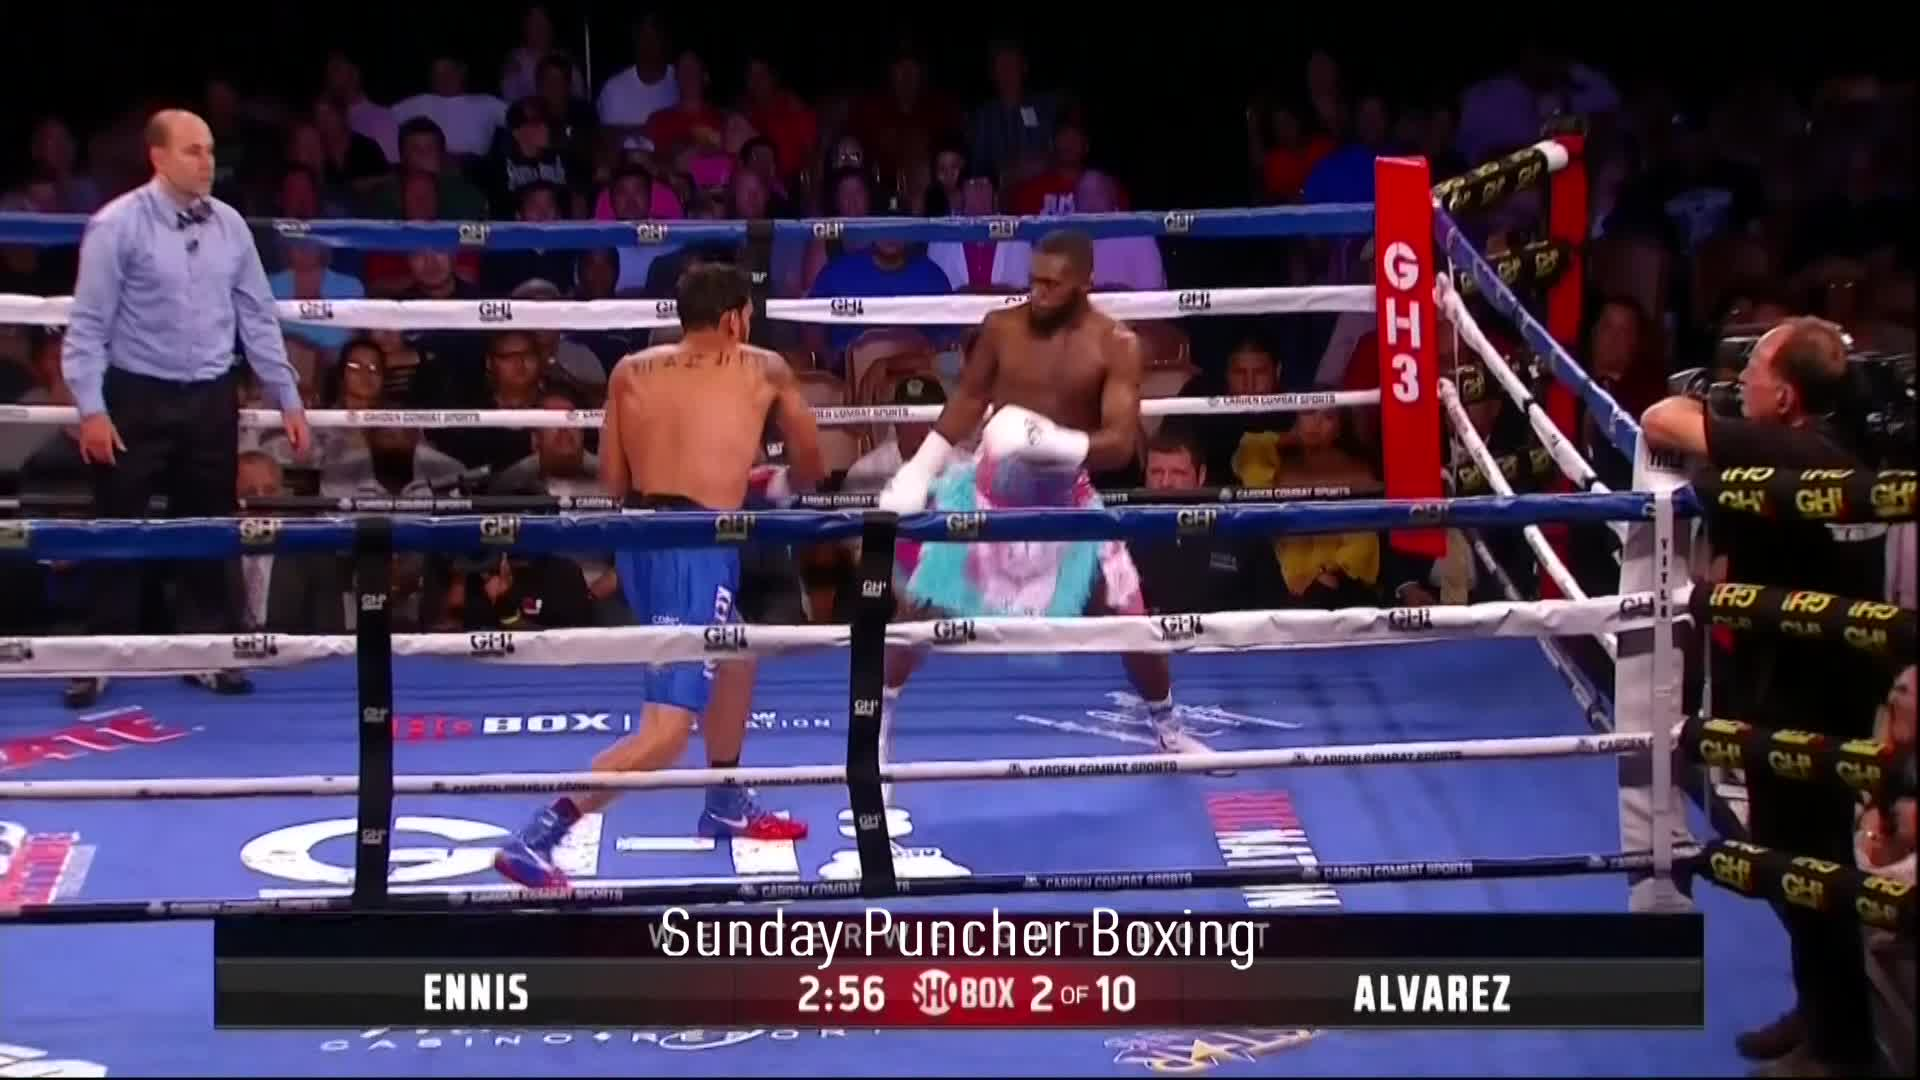 Armando Alvarez, Boxing, Jaron Ennis, Slick prospect Jaron Ennis shows off his moves GIFs